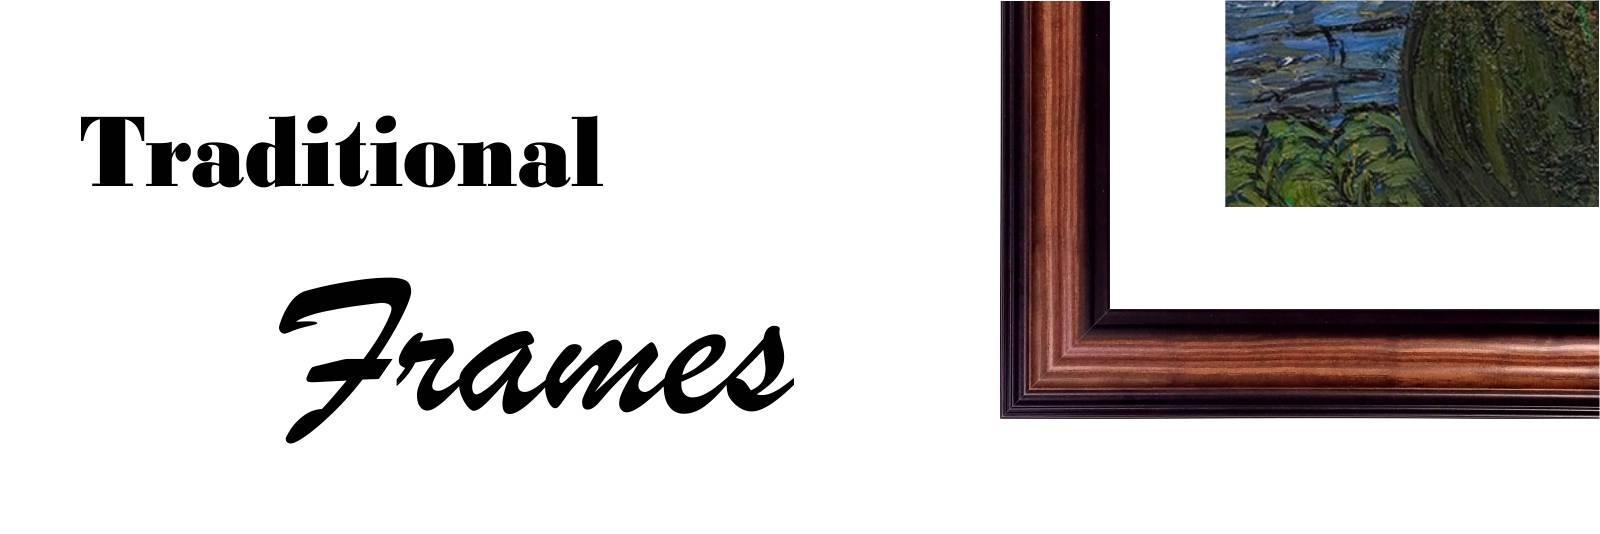 Traditional Frames